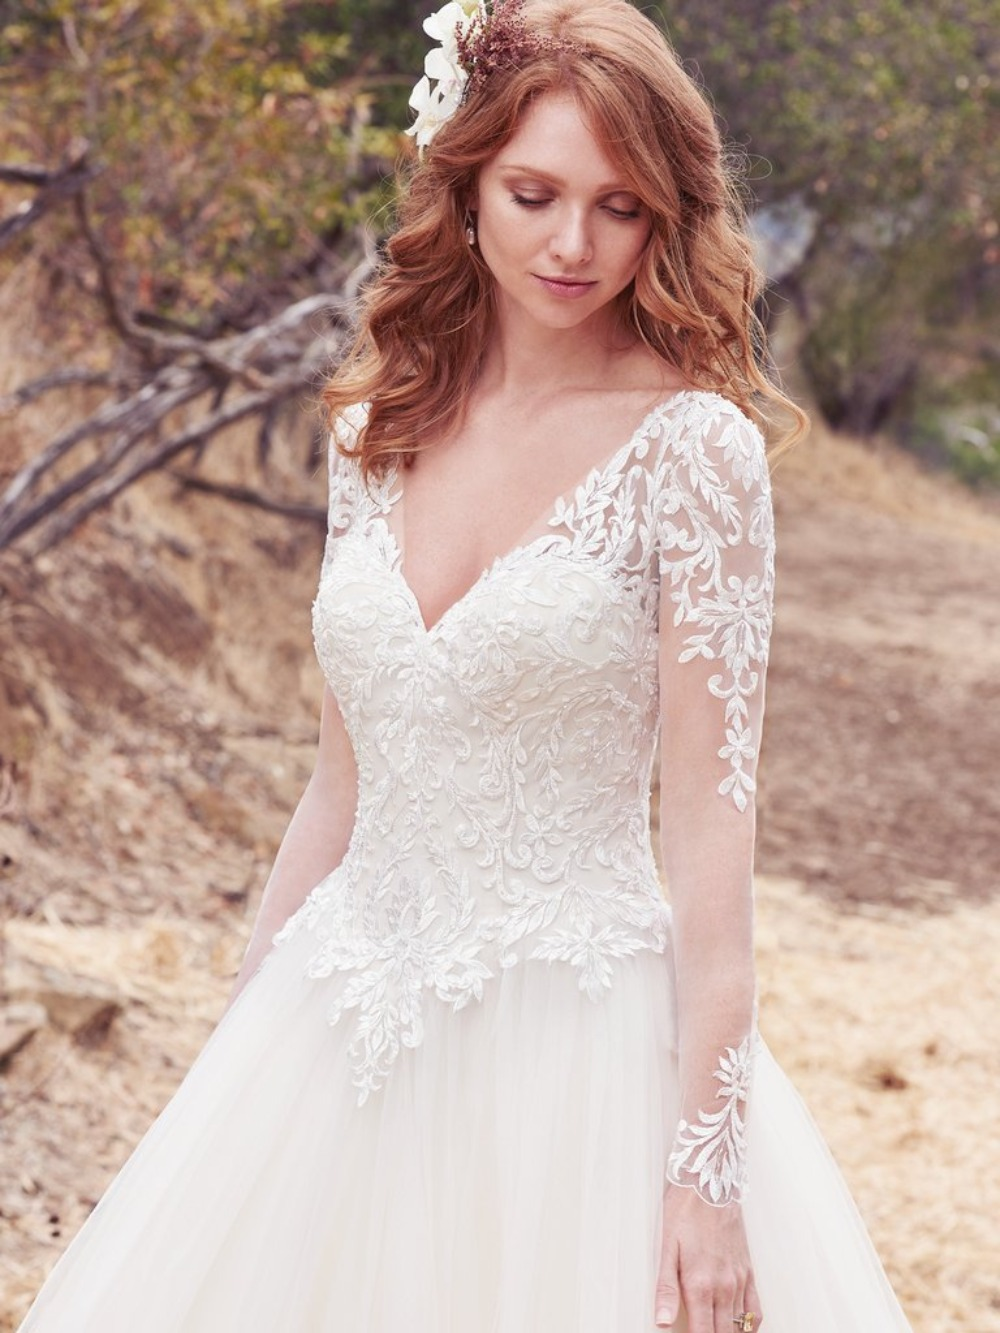 Maggie Sottero Designs Princess Gowns